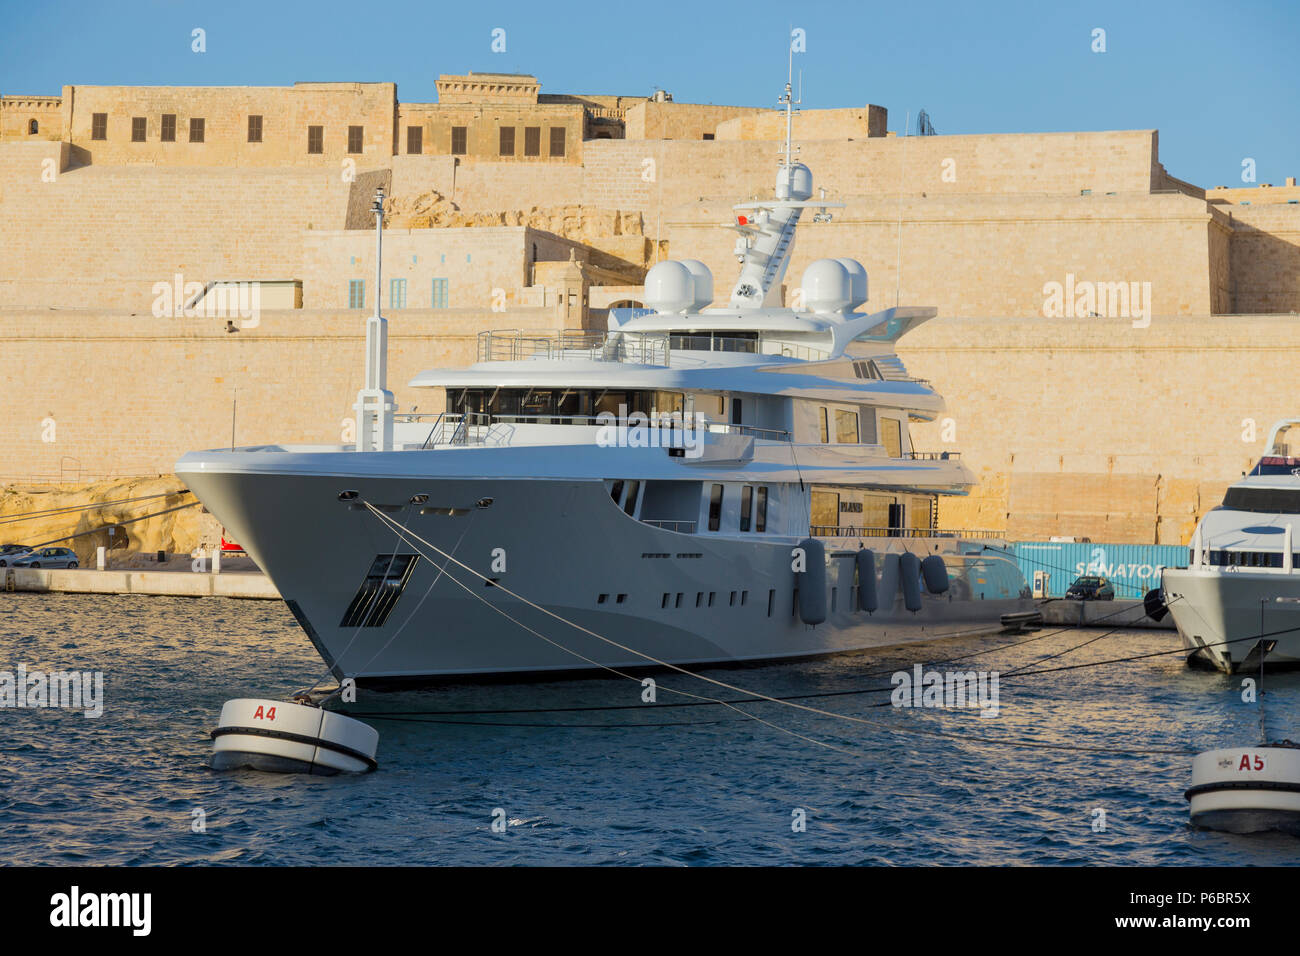 Private yacht 'Plan B': Boats and expensive private super yachts moored at Vittoriosa Yacht Marina shown with the fortifications of Birgu, behind (91) - Stock Image